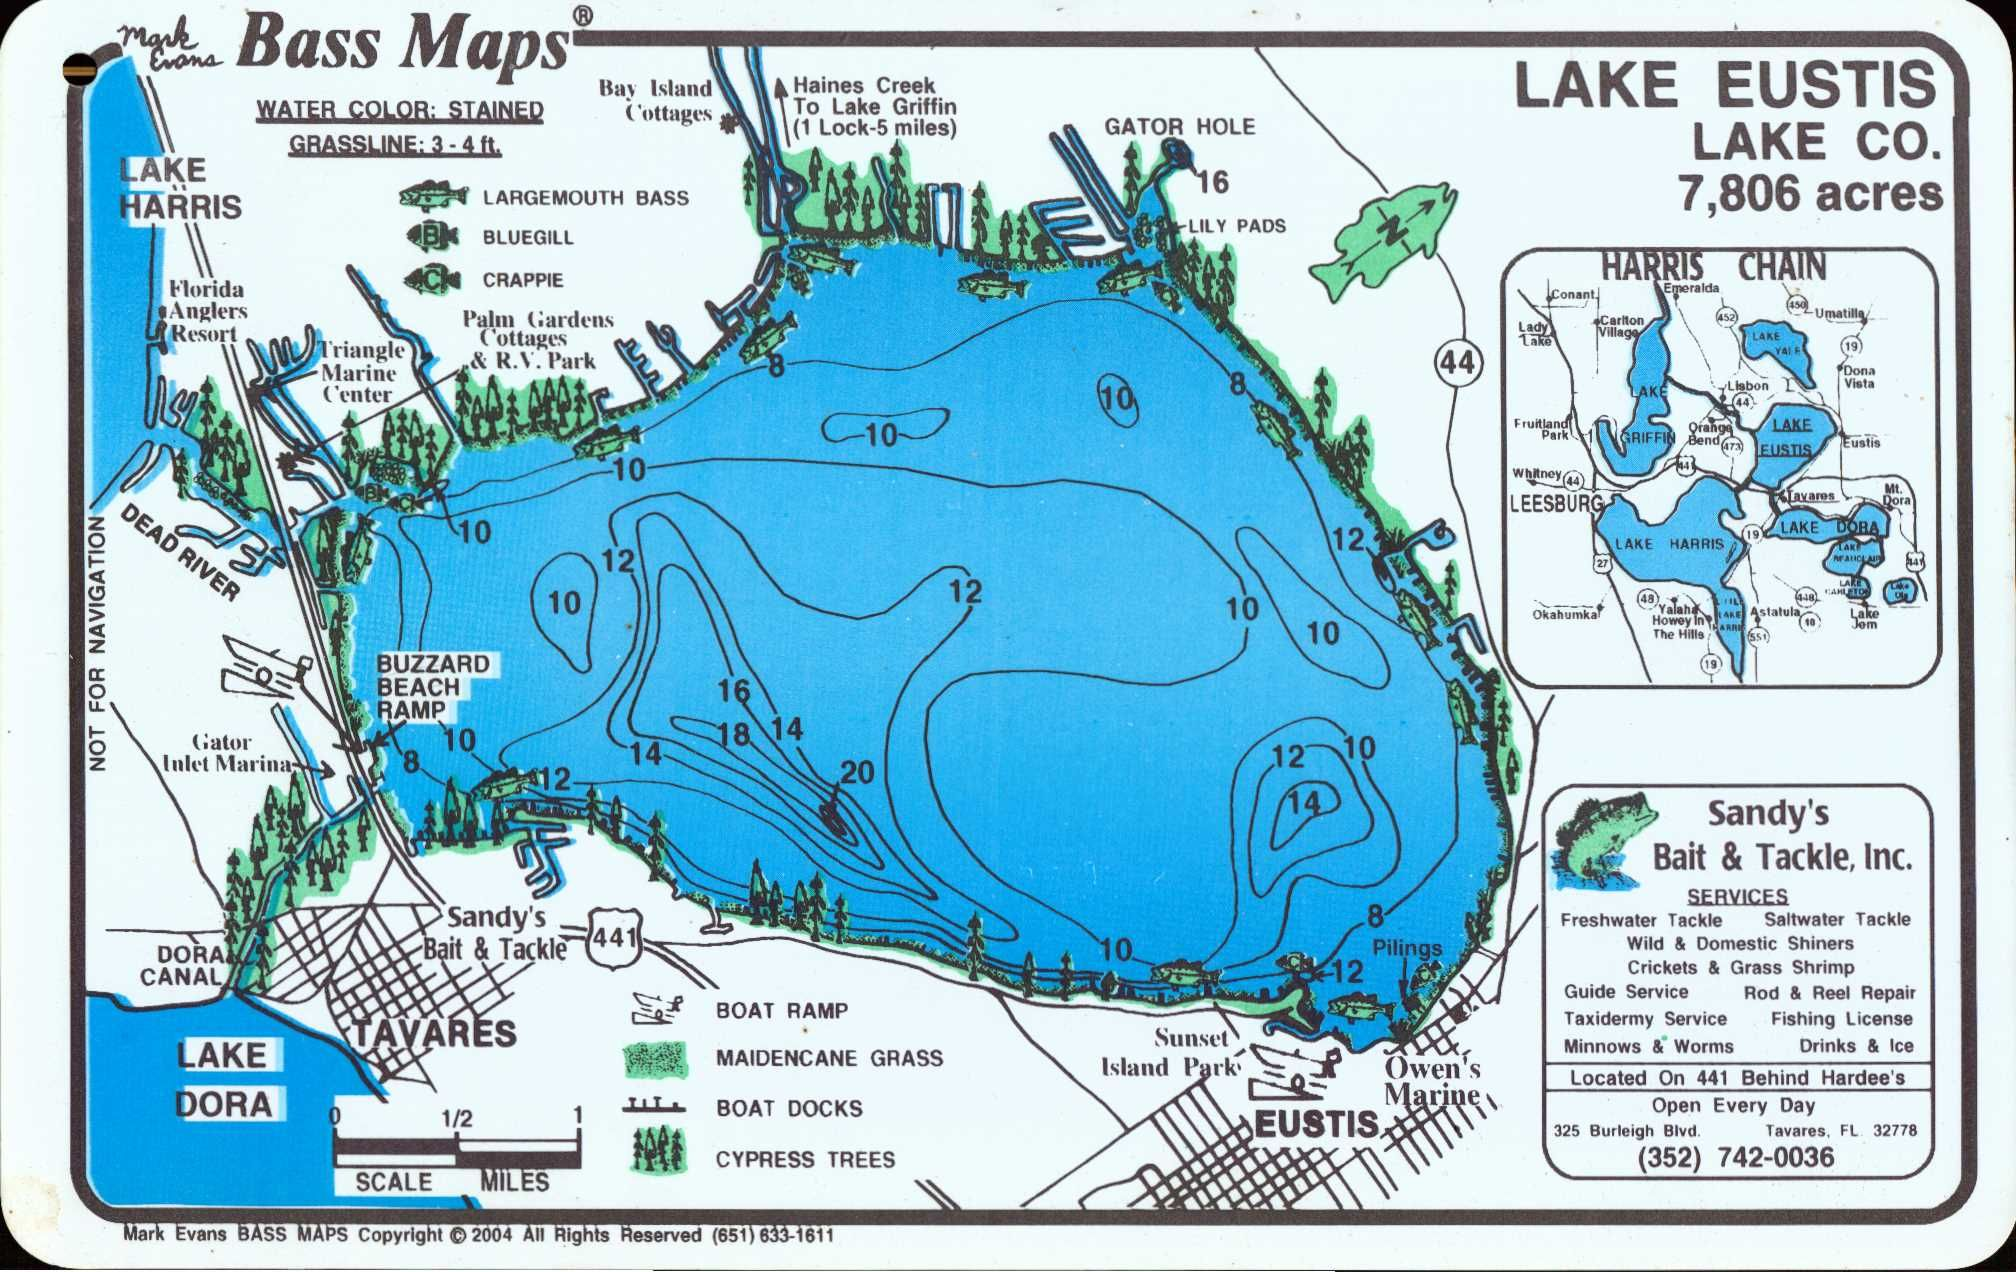 Lake Eustis In Eustis City En La Florida Centro Florida - Map of florida lakes